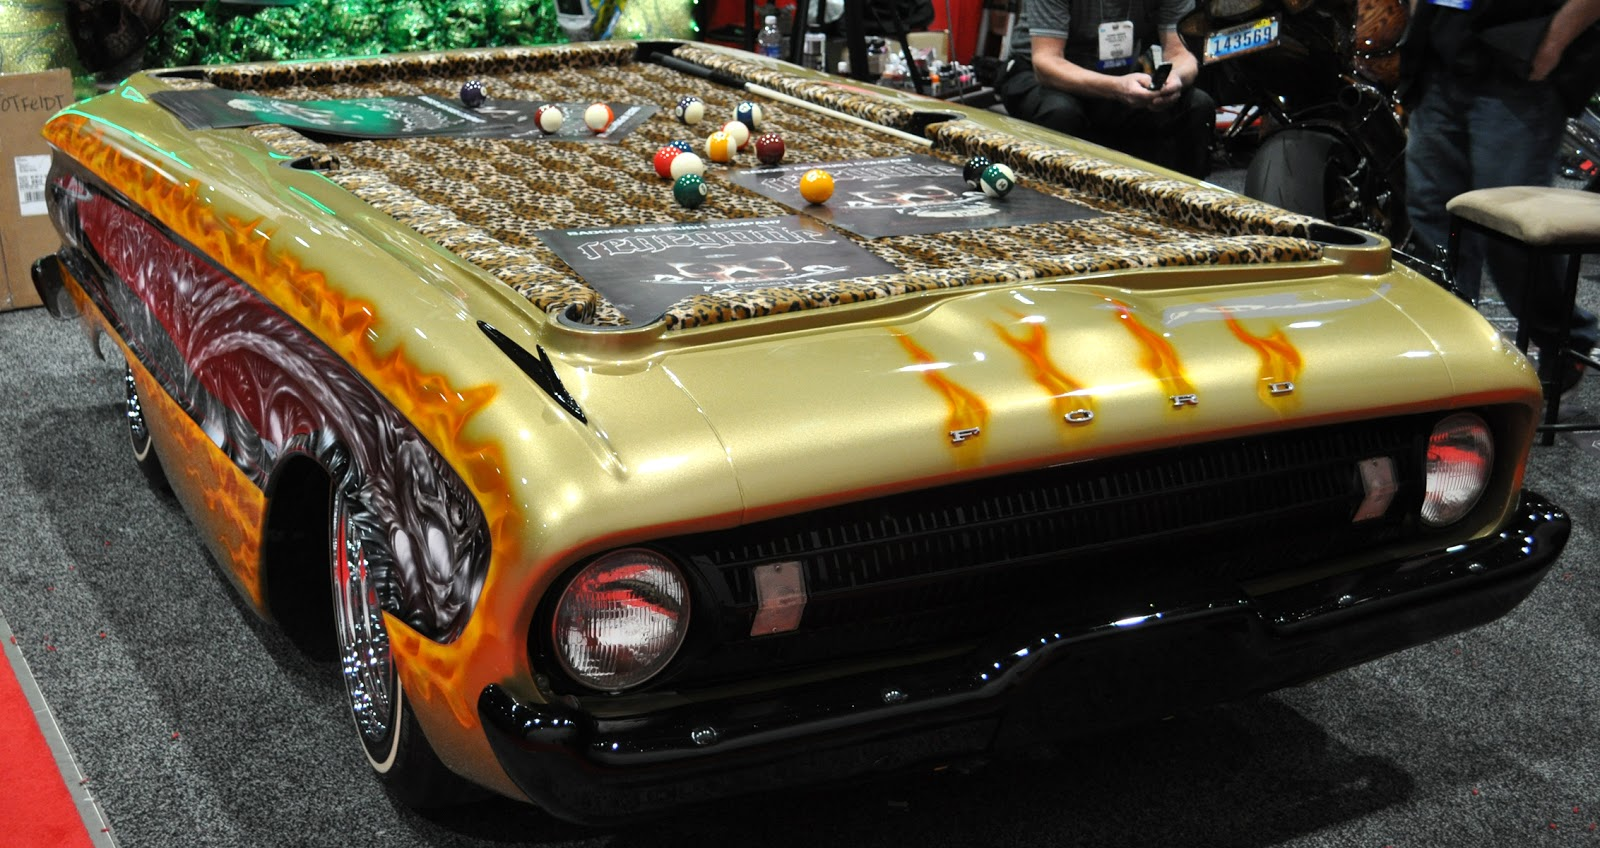 Just A Car Guy Counts Kustoms Had A Falcon With Very Little Good - Car pool table